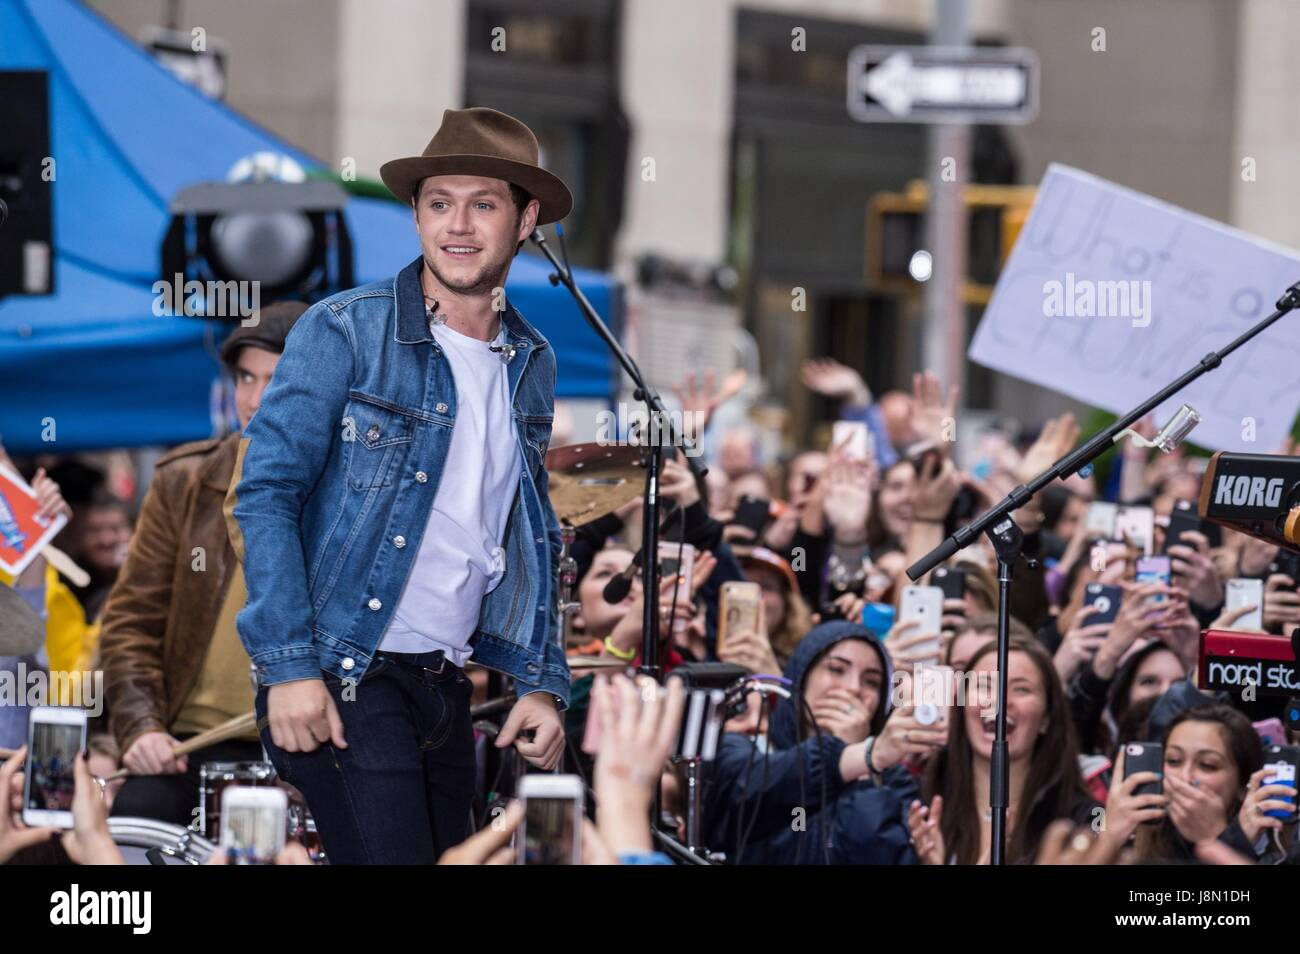 New York, NY, USA. 29 mai, 2017. Niall Horan sur scène pour NBC Today Show Concert avec One Direction, Rockefeller Photo Stock